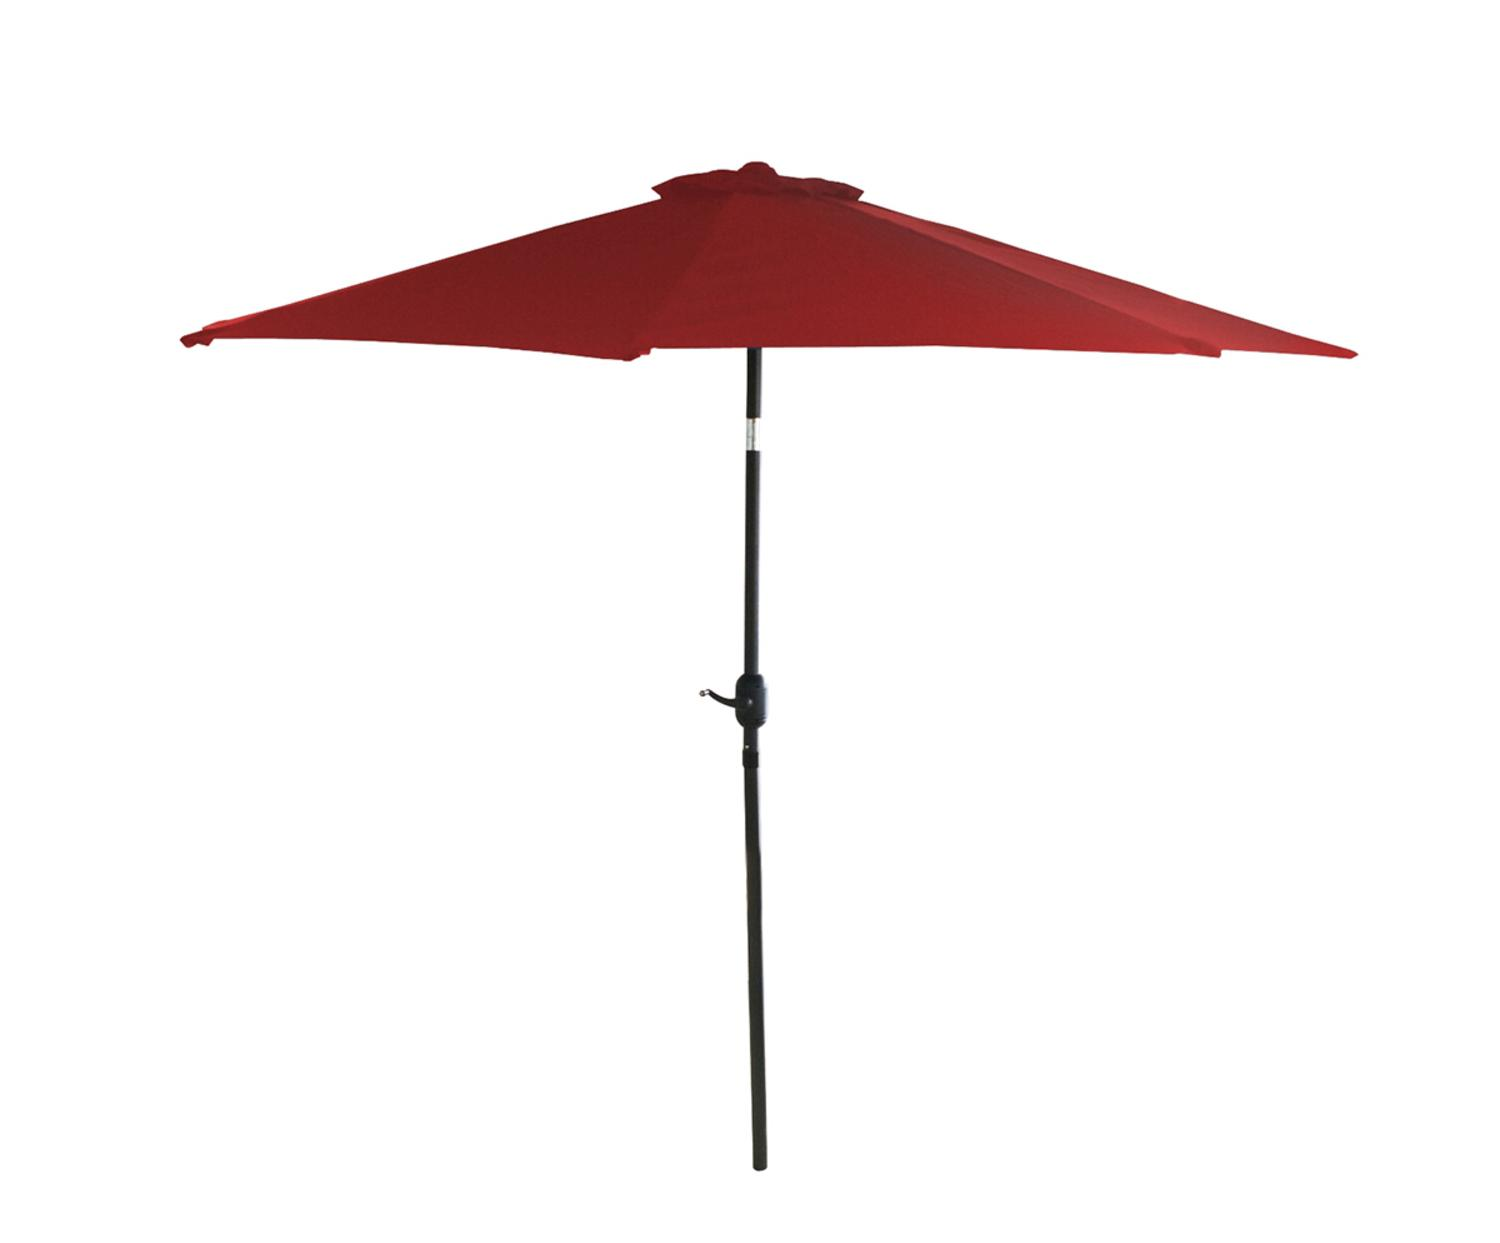 9' Outdoor Patio Market Umbrella with Hand Crank and Tilt Red and Black by LB International